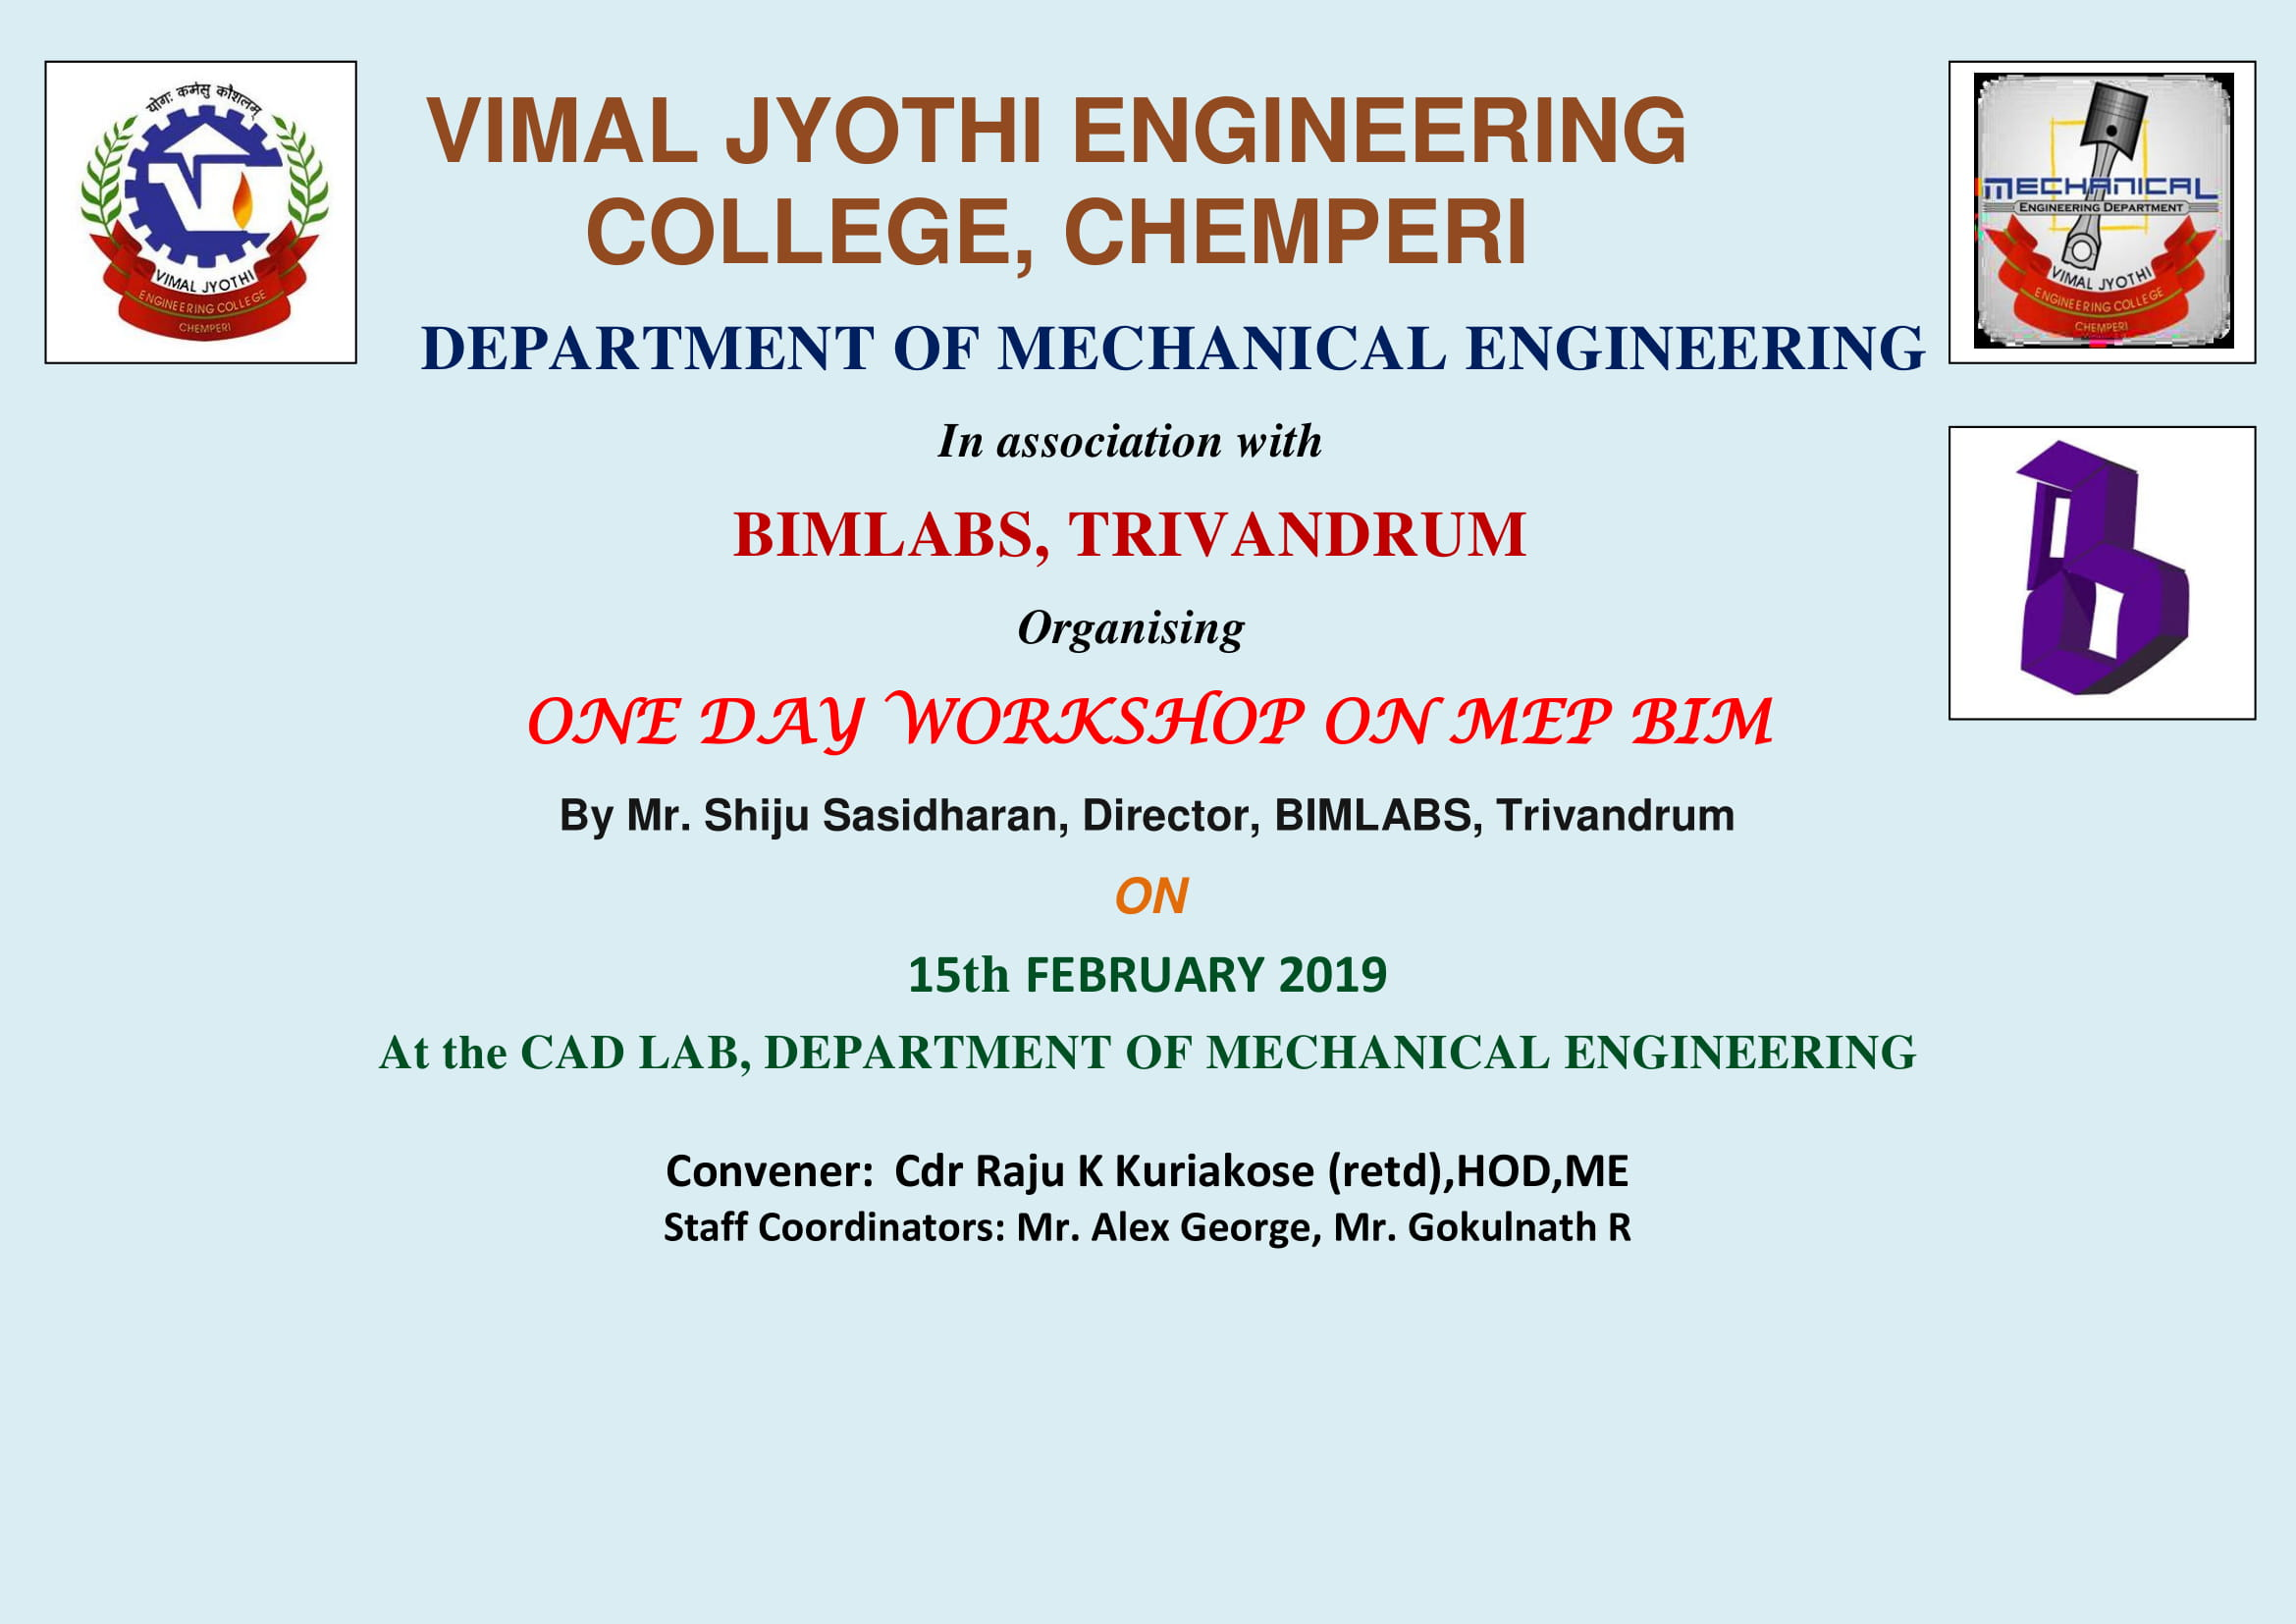 ONE DAY WORKSHOP ON MEP BIM on 15-02-2019